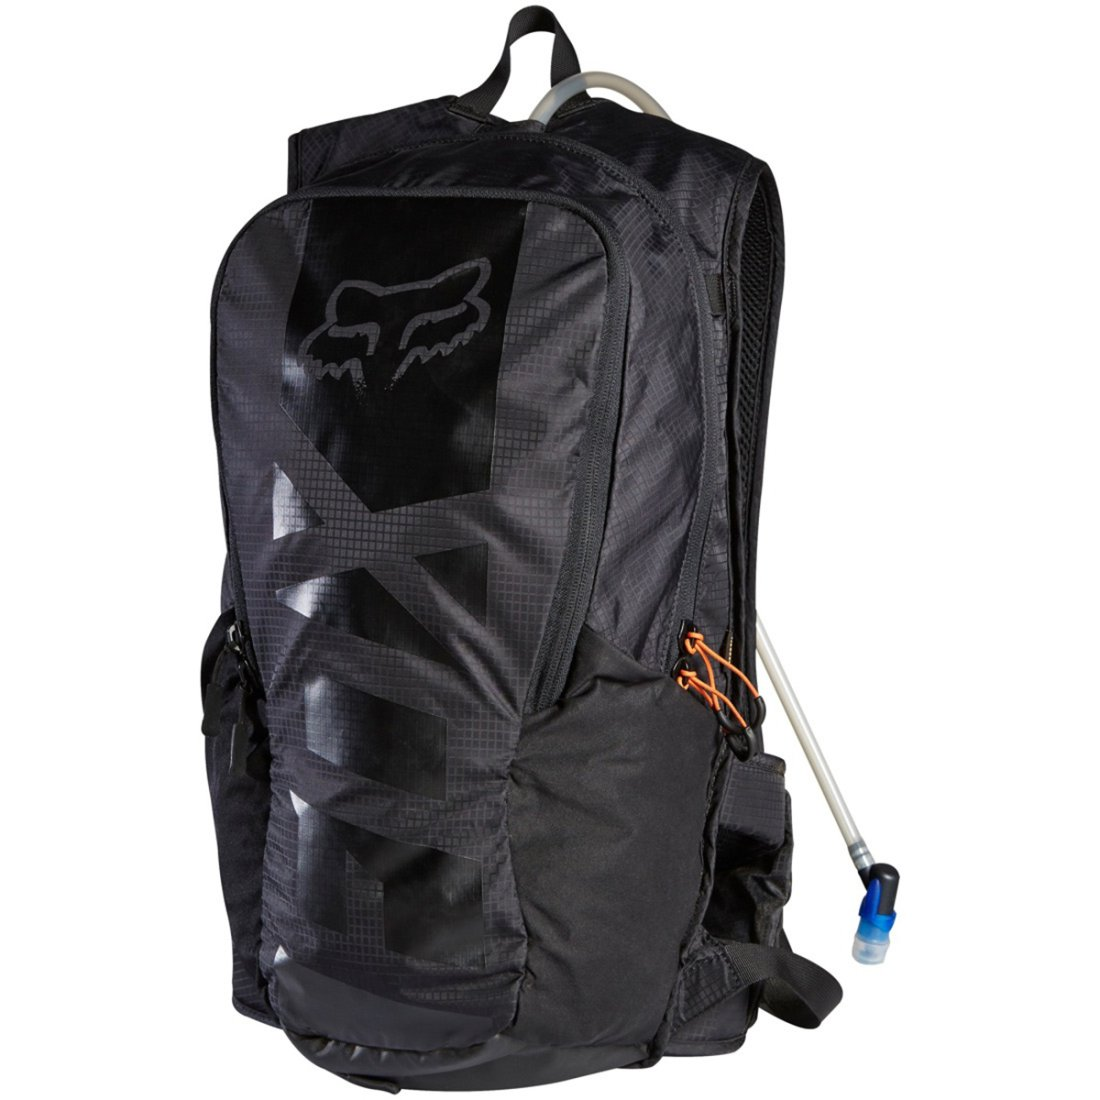 Sac FOX Large Camber Race 15L Black UNICA KvxJXnr